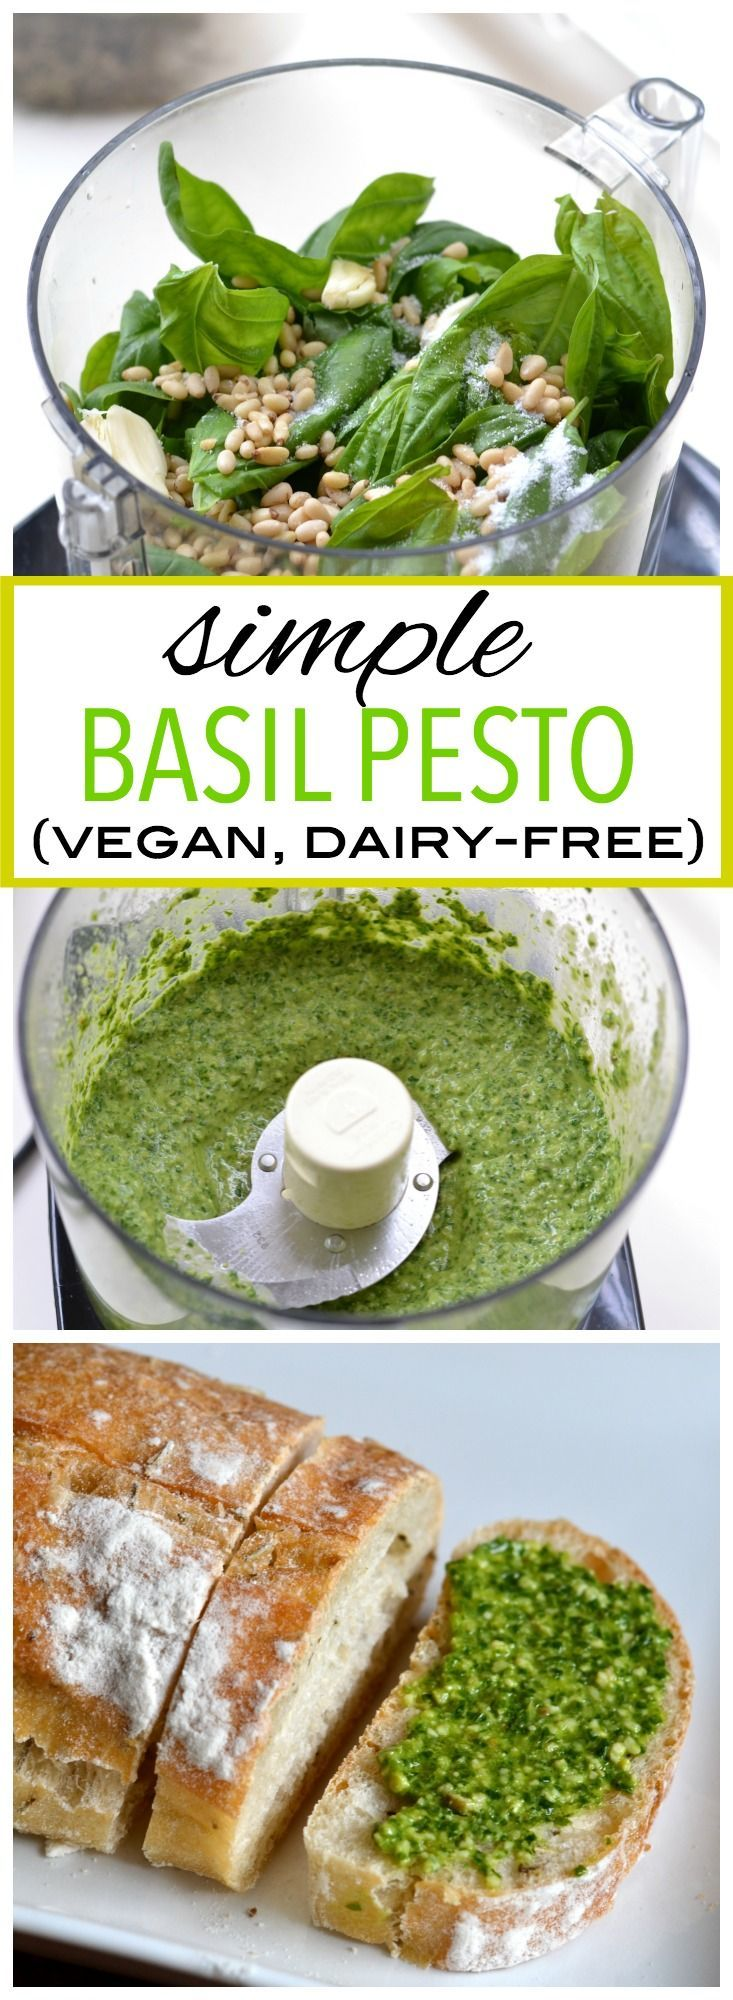 This simple pesto recipe only requires five ingredients, and is packed full of fresh flavor! (Dairy-free, vegan).